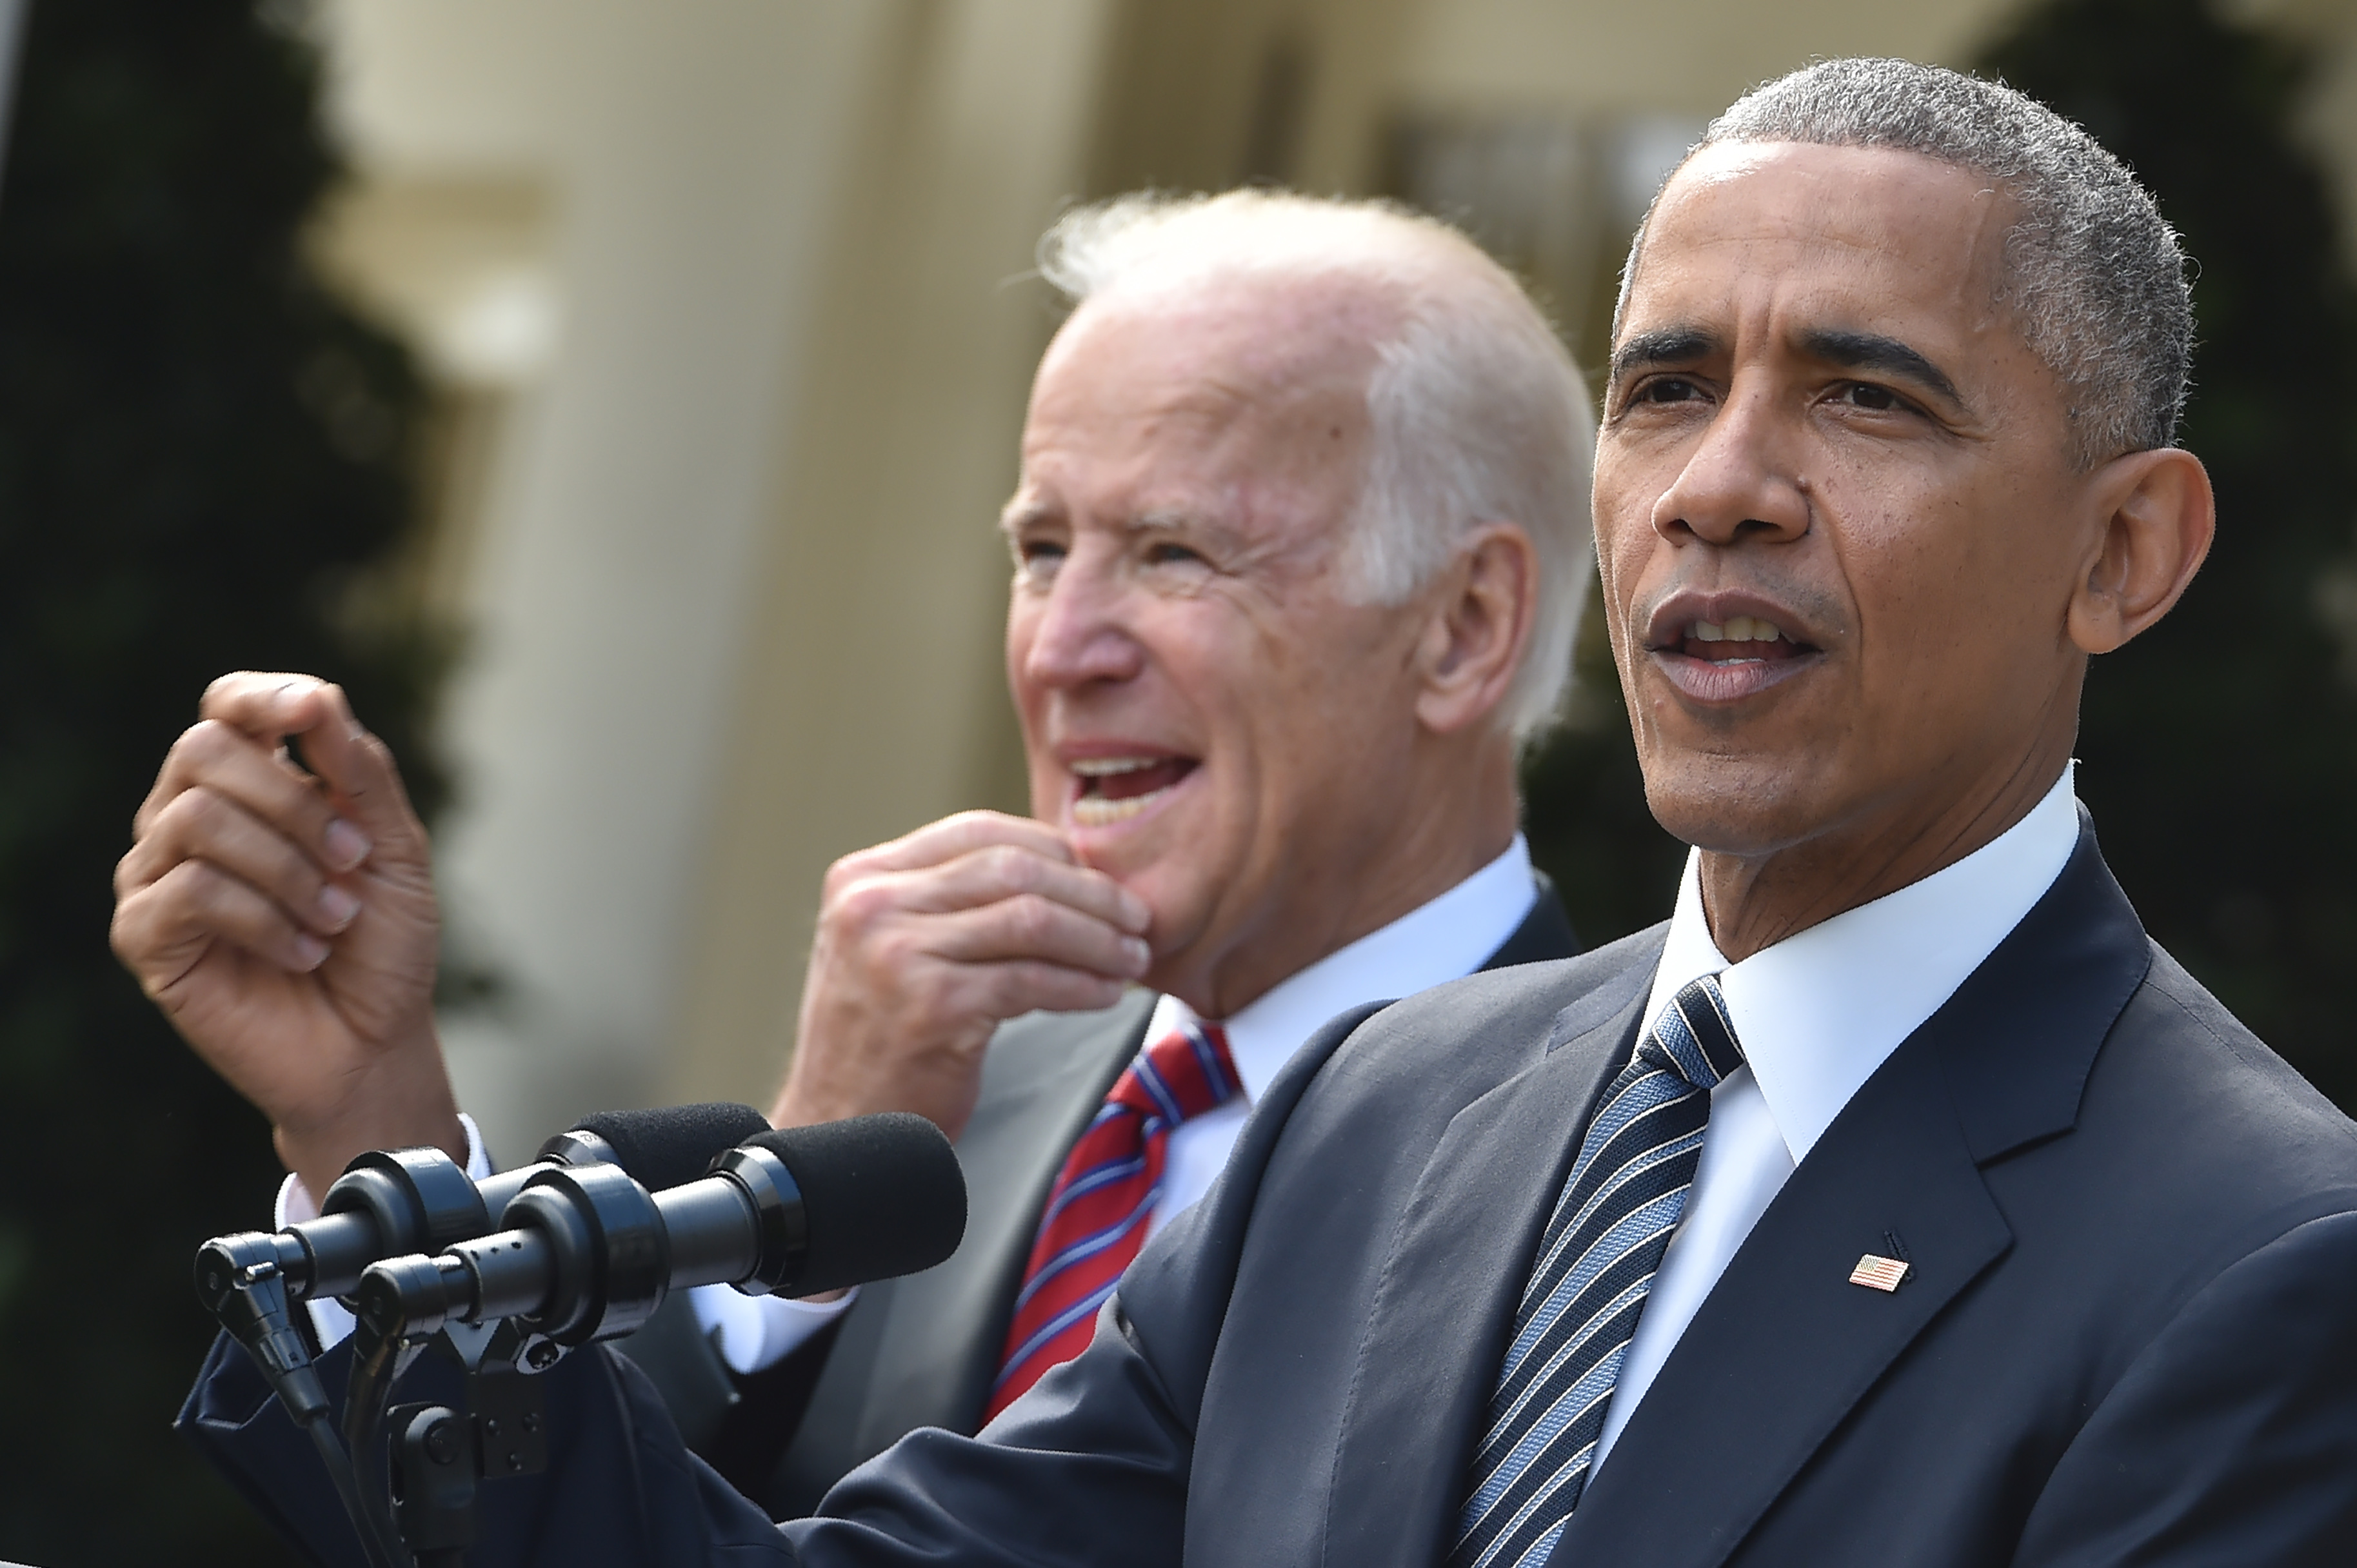 US President Barack Obama (R) together with Vice President Joe Biden addresses the nation publicly for the first time publicly since the shock election of Donald Trump as his successor, on November 9, 2016 at the White House in Washnigton, D.C. Throughout the two-year-long election campaign, Obama has repeated a mantra that he will do all he can to ensure the peaceful transition of power. / AFP / Nicholas Kamm (Photo credit should read NICHOLAS KAMM/AFP/Getty Images)